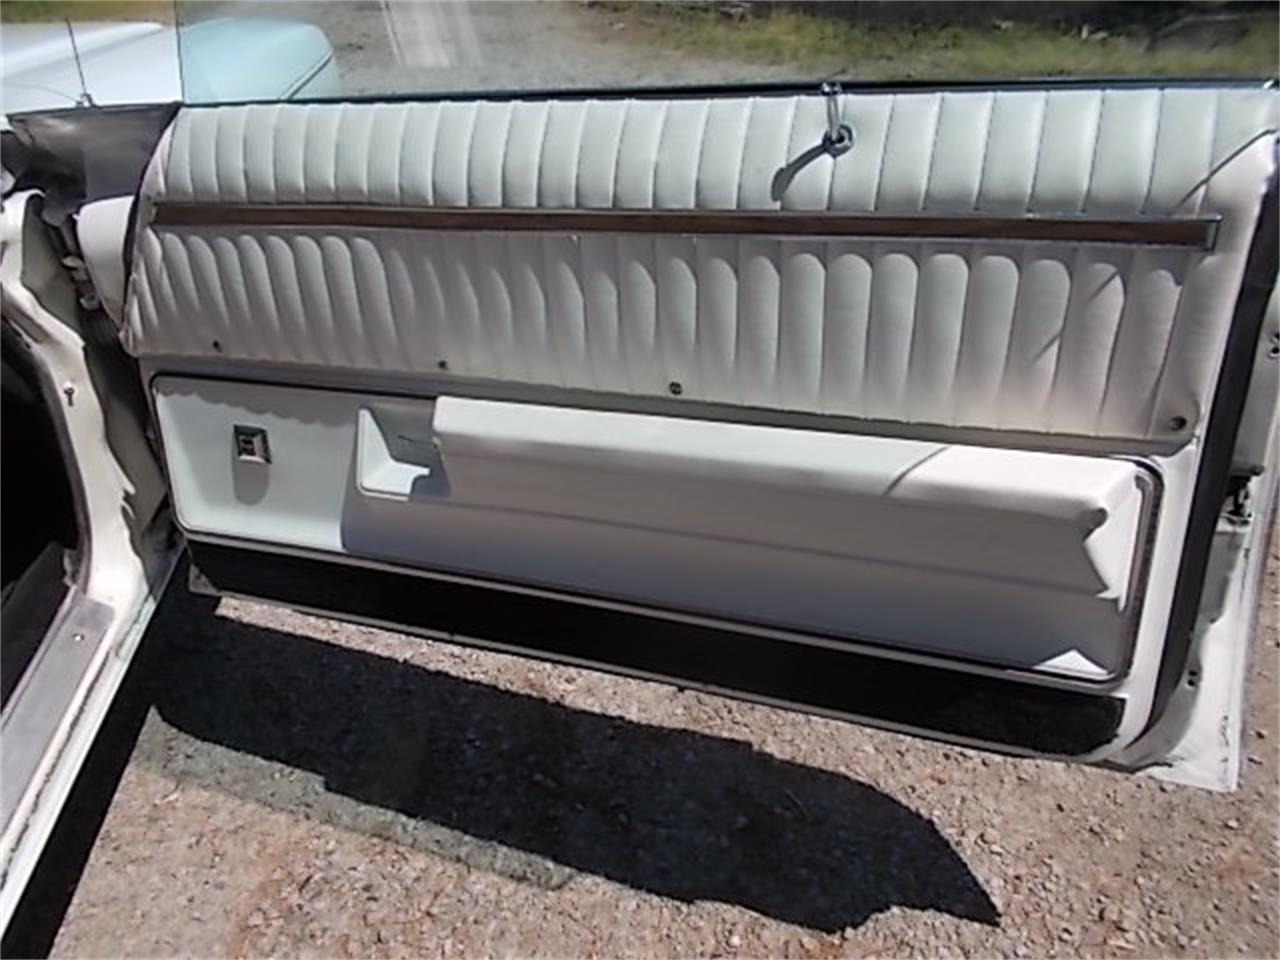 Large Picture of '72 Oldsmobile Delta 88 Royale - $5,500.00 - QB97